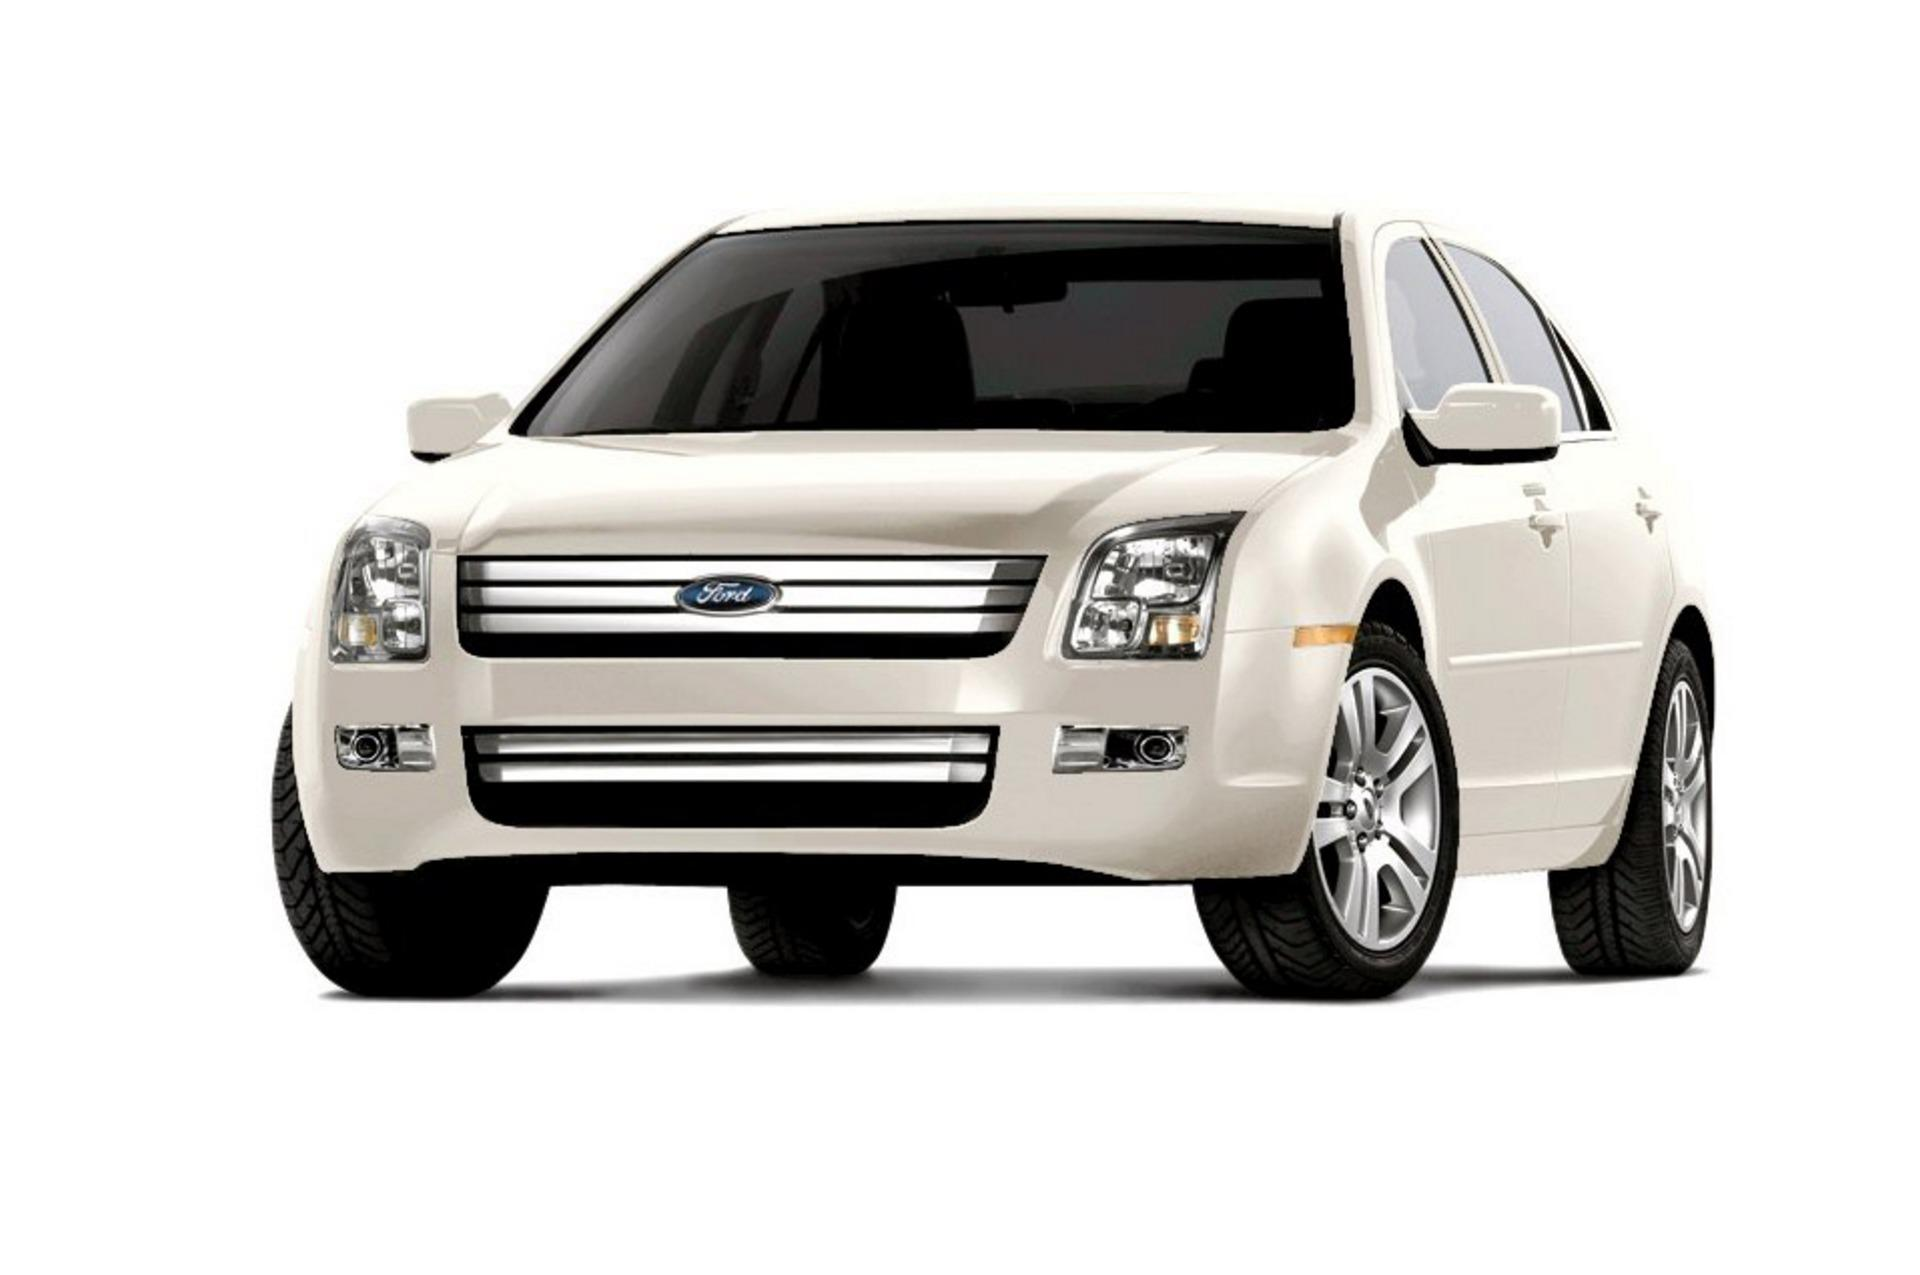 2009 Ford Fusion #1